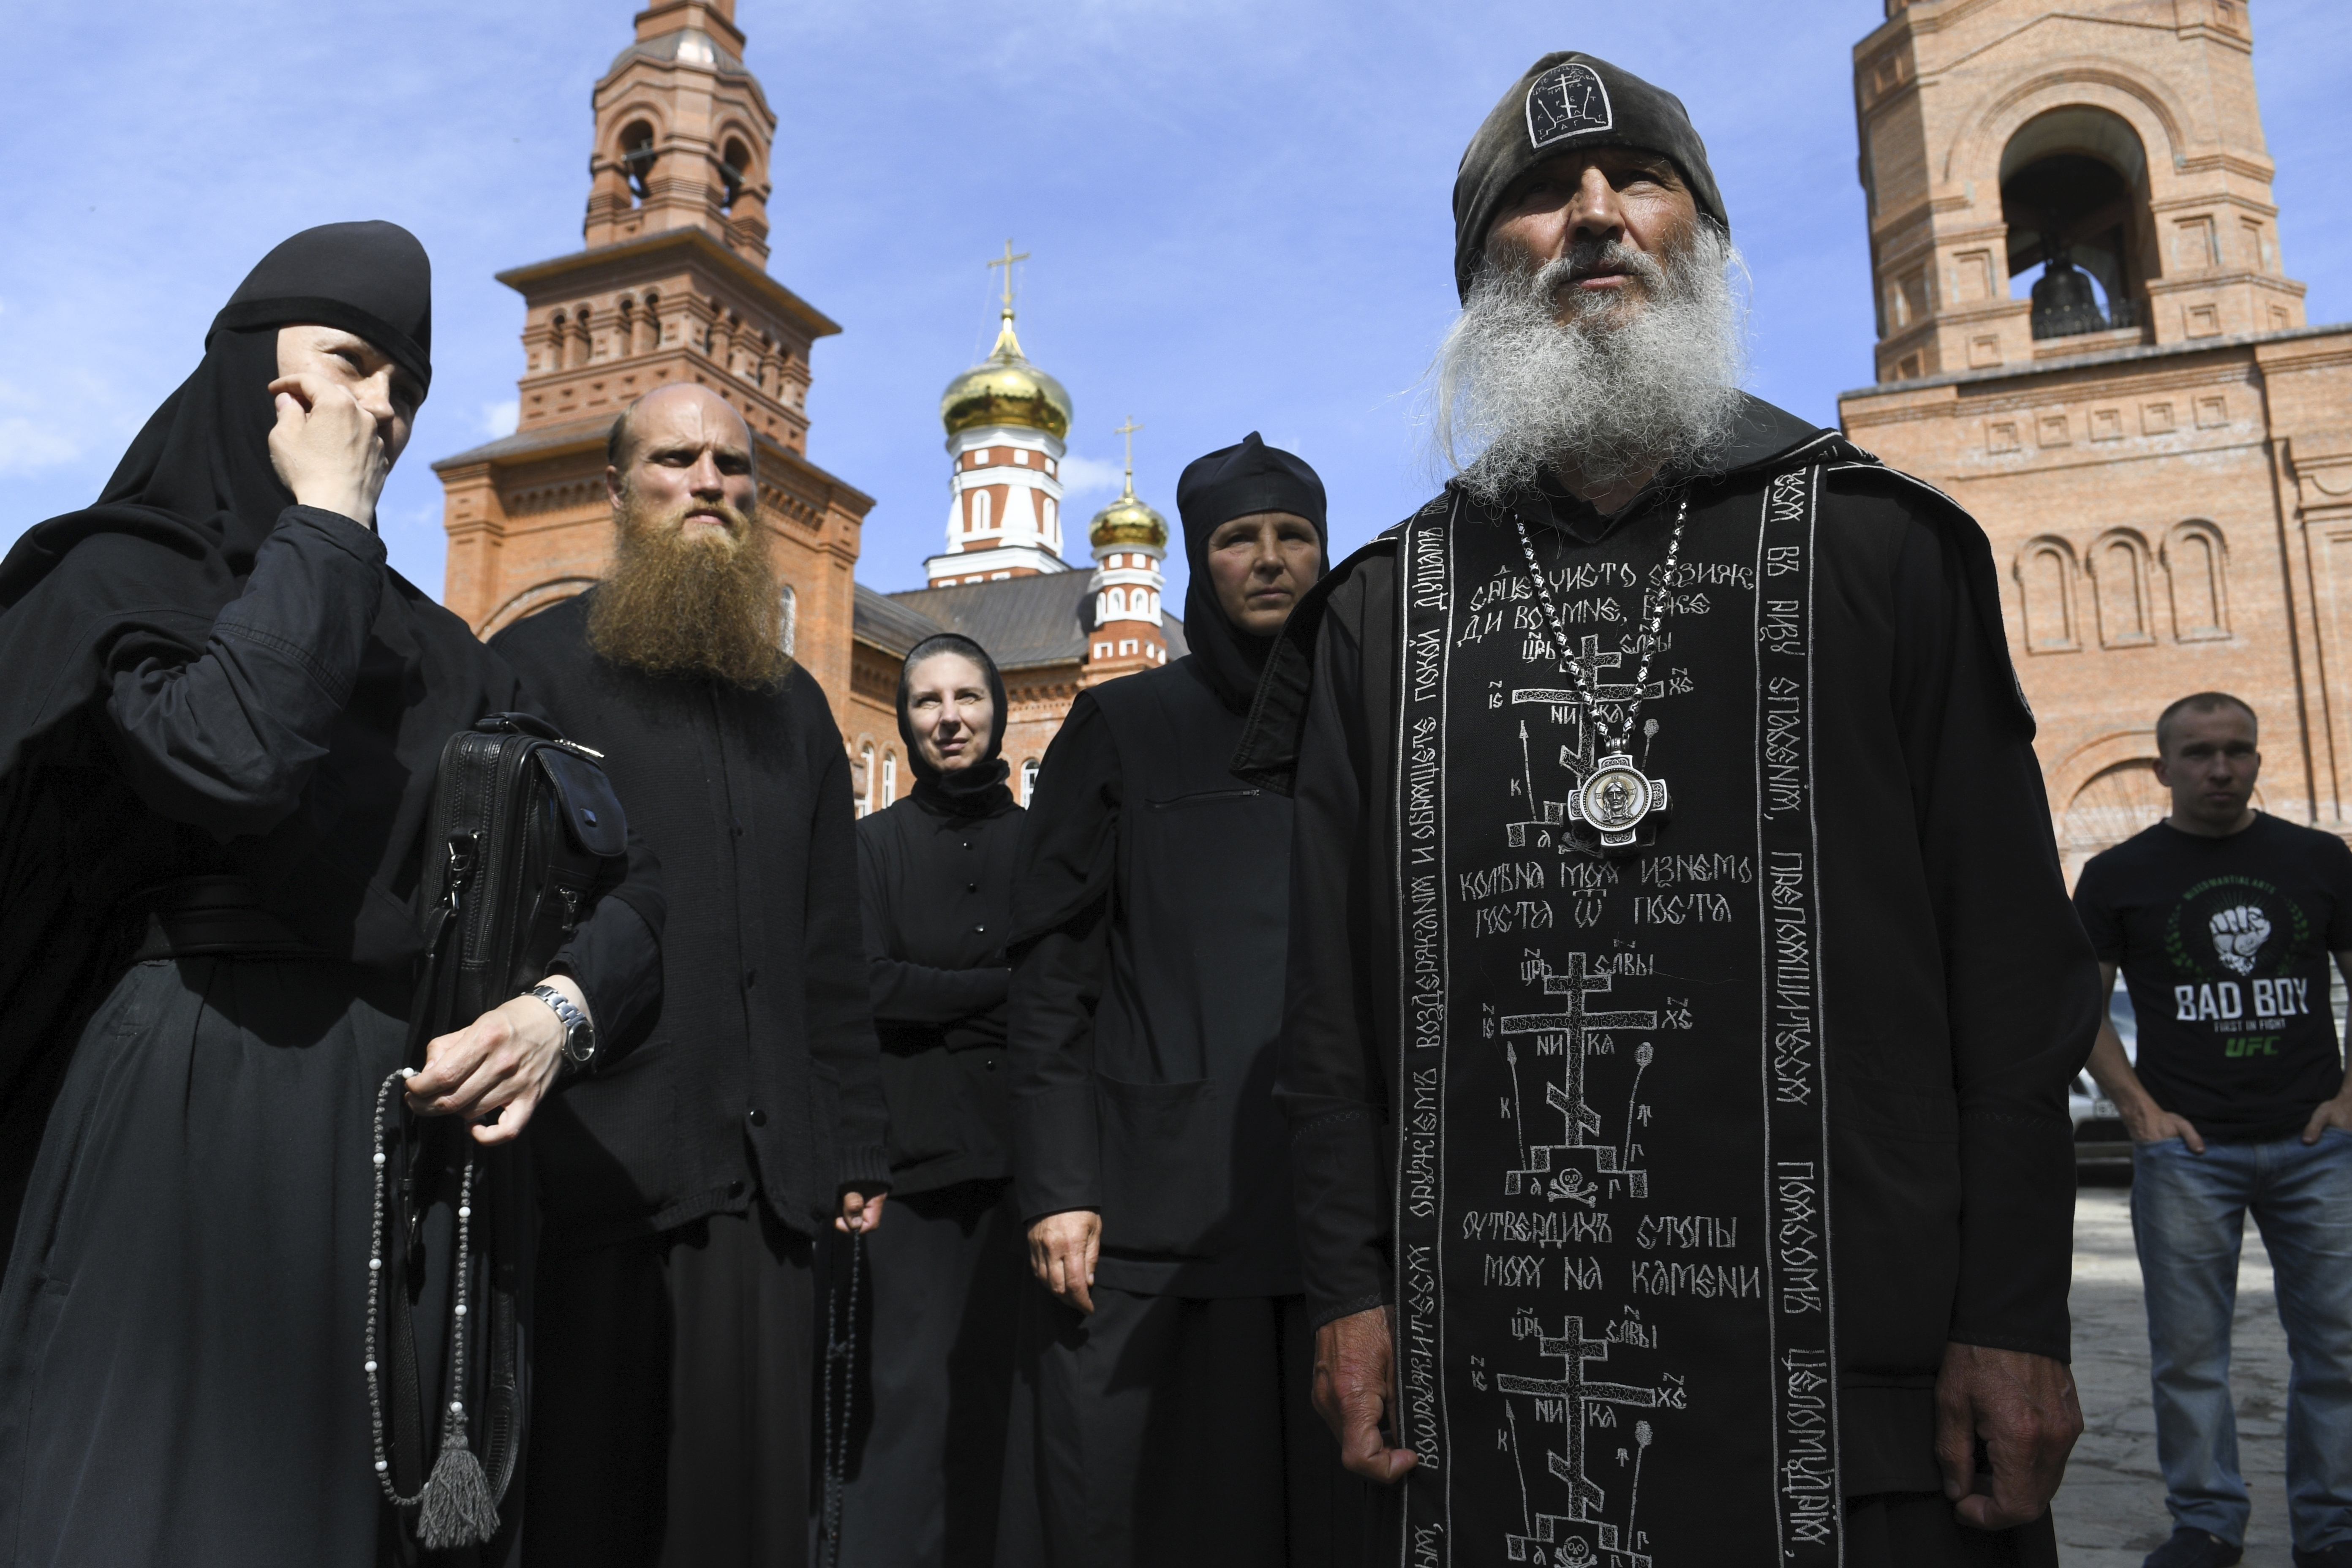 Father Sergiy, a Russian monk who has defied the Russian Orthodox Church's leadership, right, speaks to journalists in Russian Ural's Sredneuralsk, Russia on June 17, 2020.